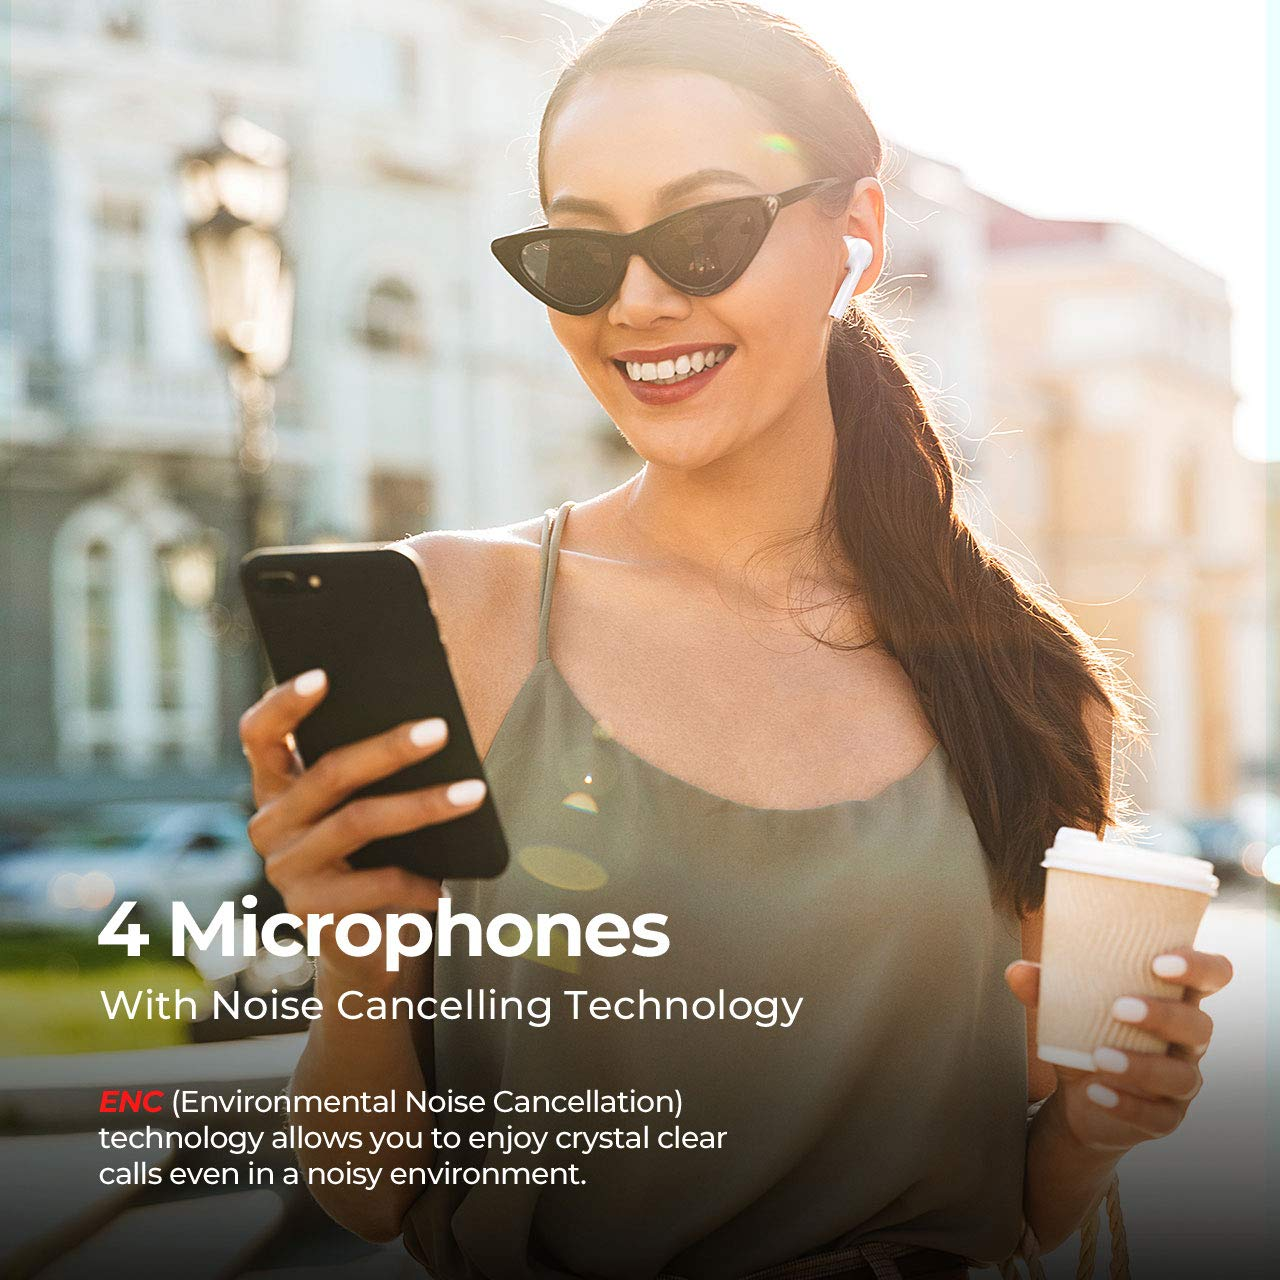 Mpow M10 Wireless Earbuds, Bluetooth Earbuds Sport w 4 Mics w ENC Noise Cancelling Tech, One Step Pairing Bluetooth 5.0 Earbuds w 26 Hrs Playtime, Sport Earbuds w in-Ear Detection,White